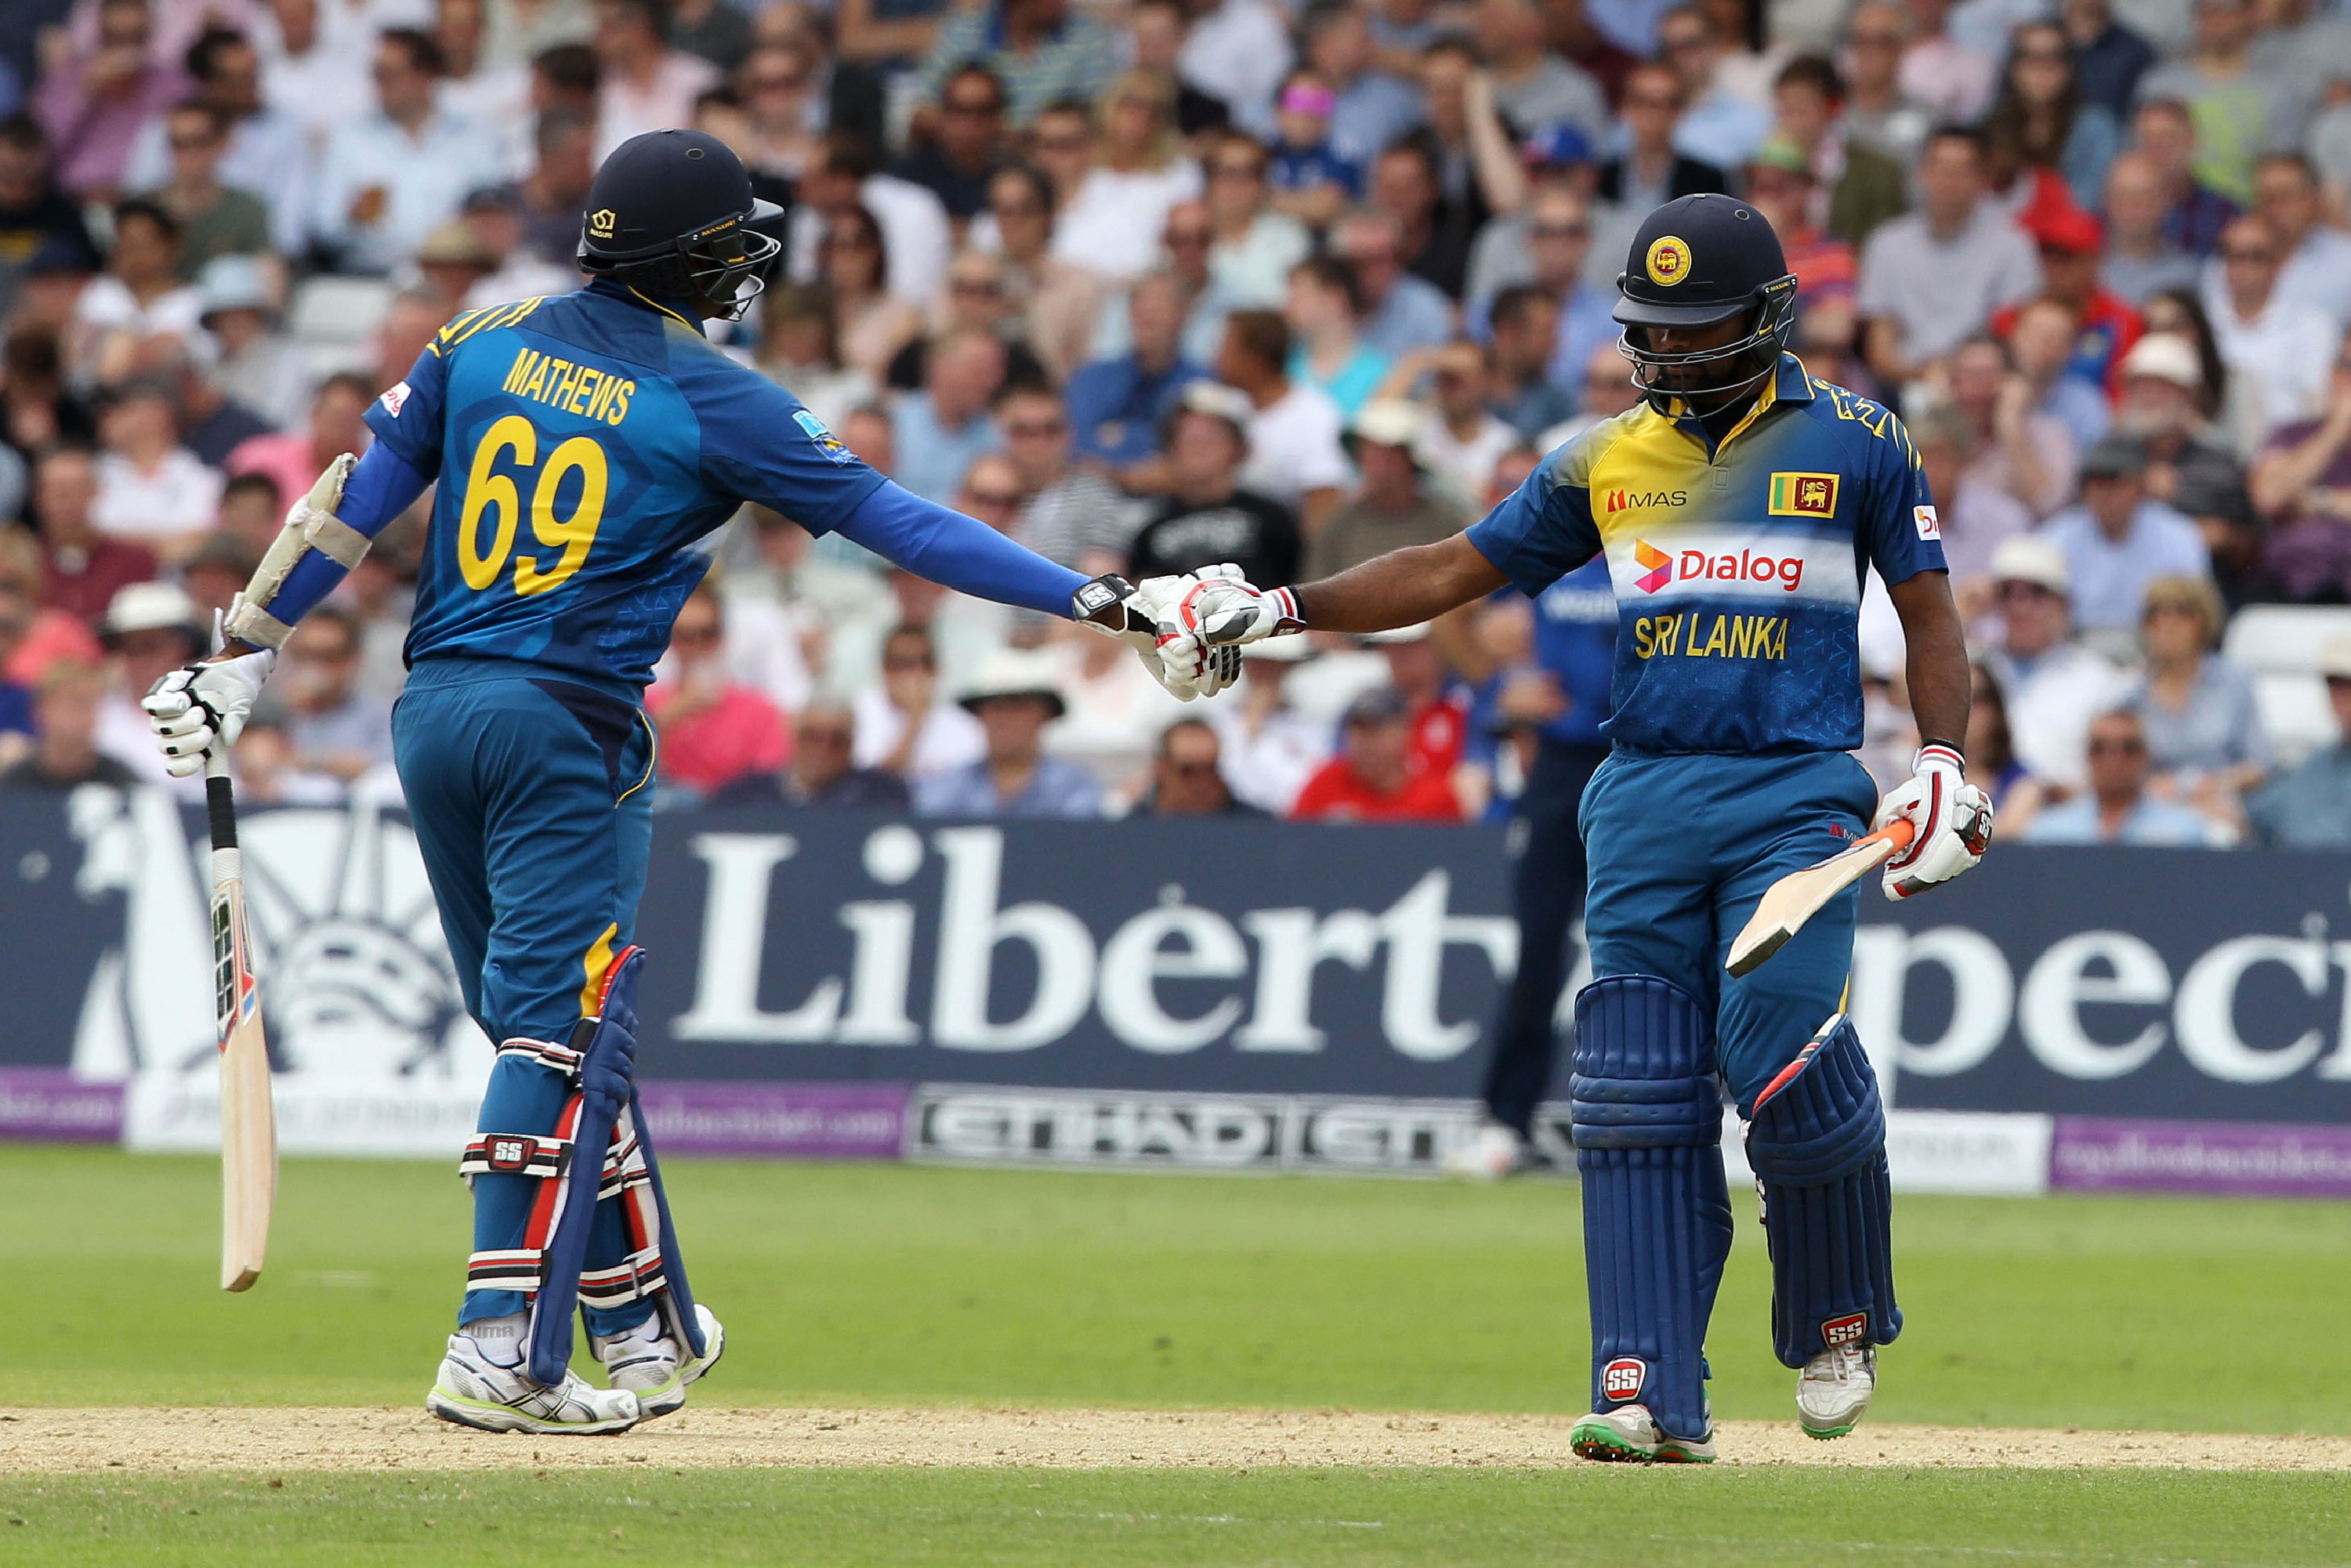 Sri Lanka's captain Angelo Mathews (L) gestures to Sri Lanka's Seekkuge Prasanna during play in the first one day international (ODI) cricket match between England and Sri Lanka at Trent Bridge cricket ground in Nottingham, central England, on June 21, 2016. England captain Eoin Morgan won the toss and elected to field against Sri Lanka in the first one-day international at Trent Bridge on Tuesday. / AFP PHOTO / Lindsey PARNABY